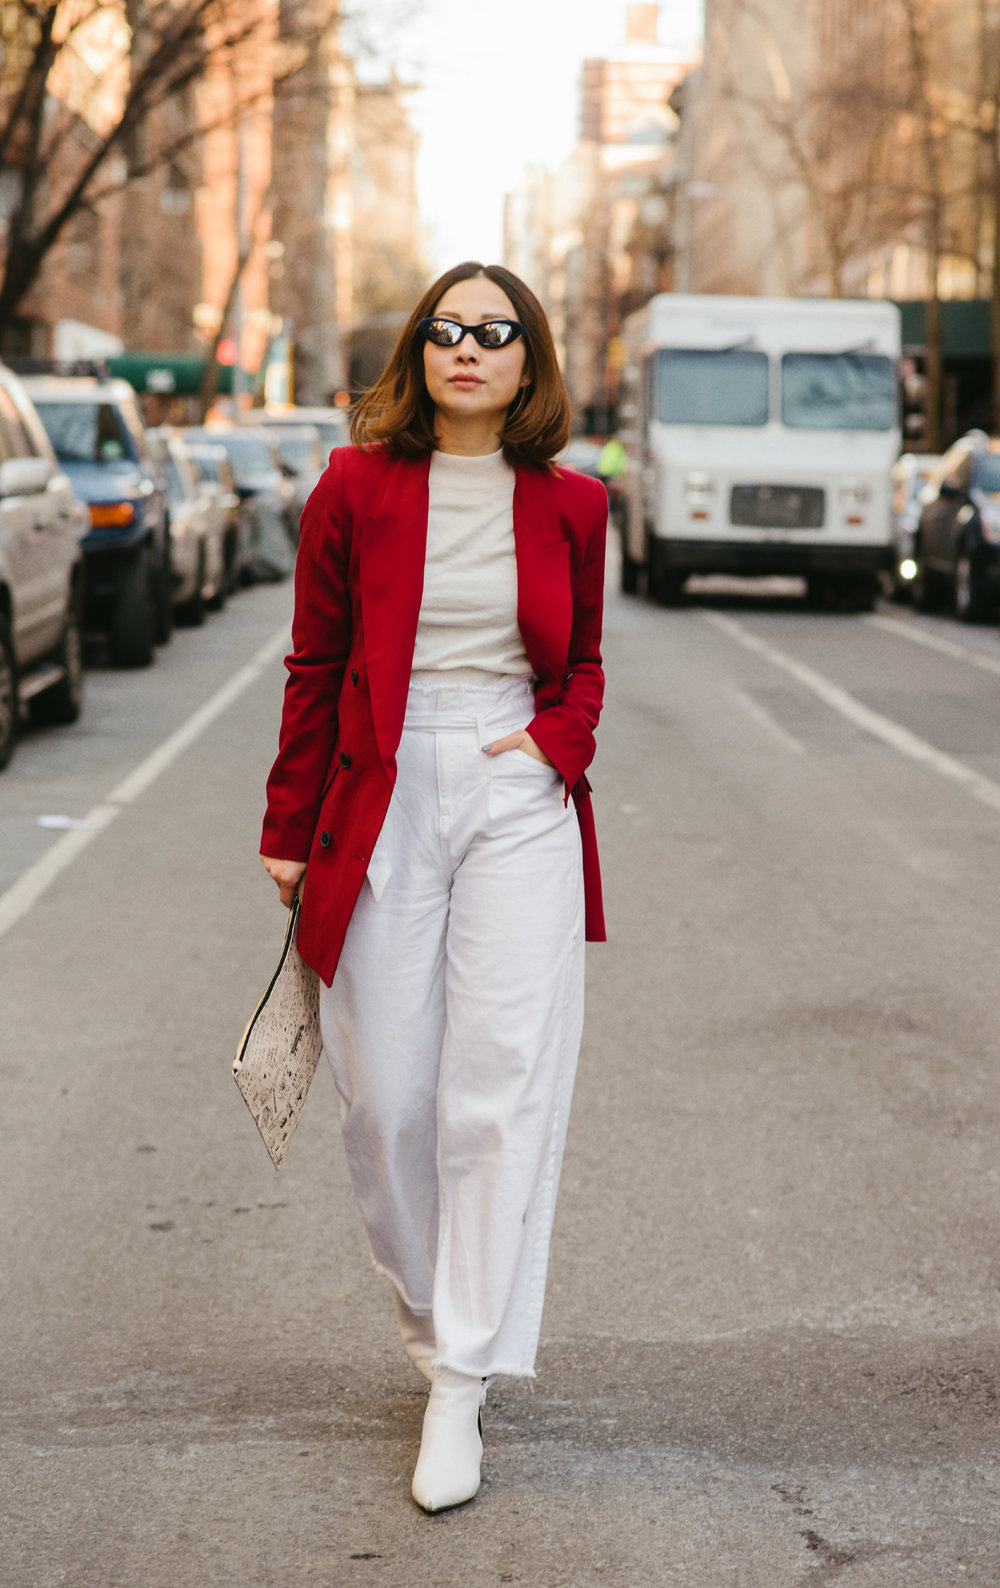 spring outfit inspiration 2018.JPG